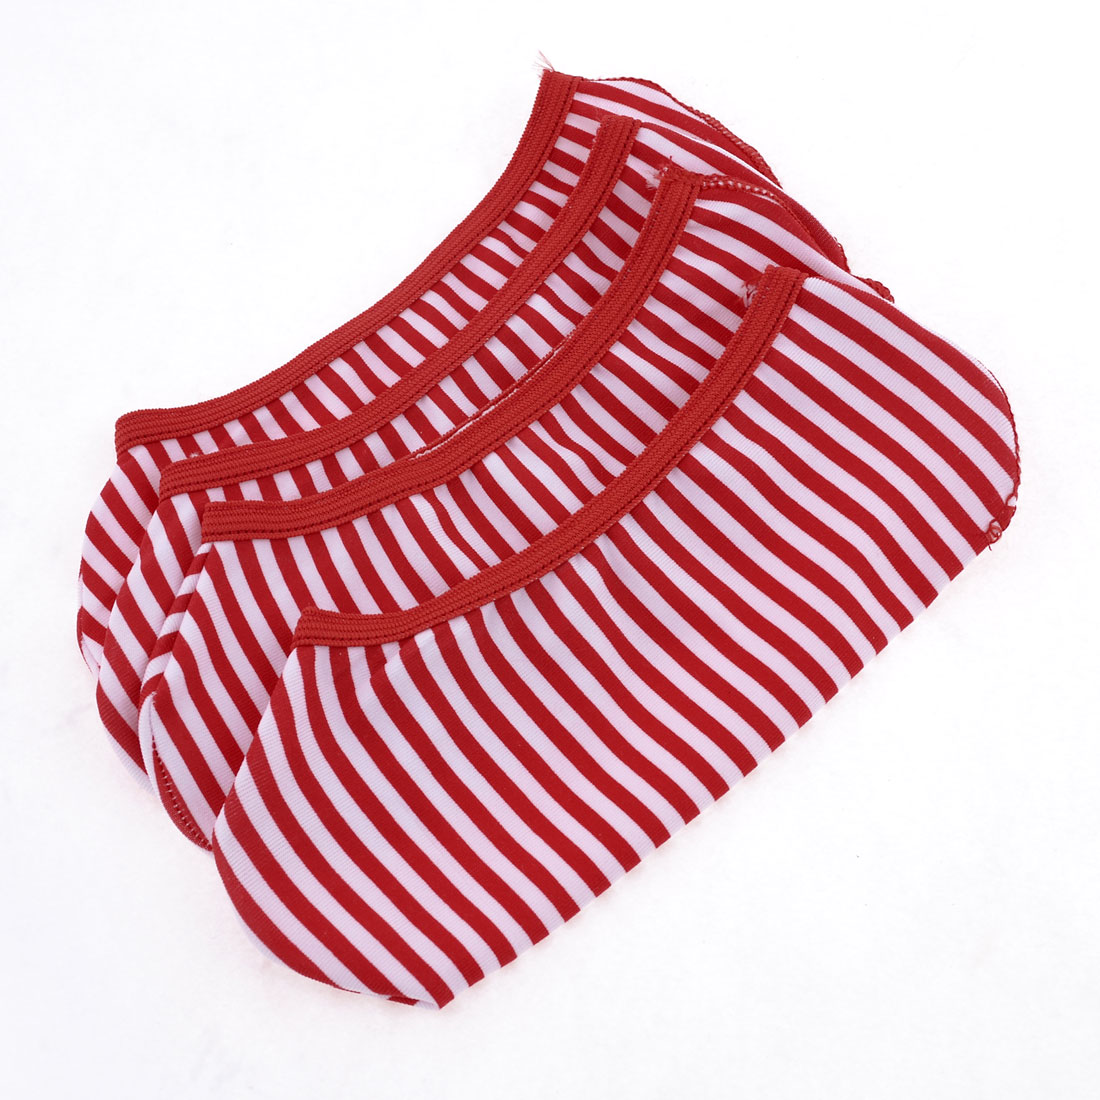 2 Pairs Low Cut Red White Stripes Pattern Textured Stretch Boat Socks for Woman